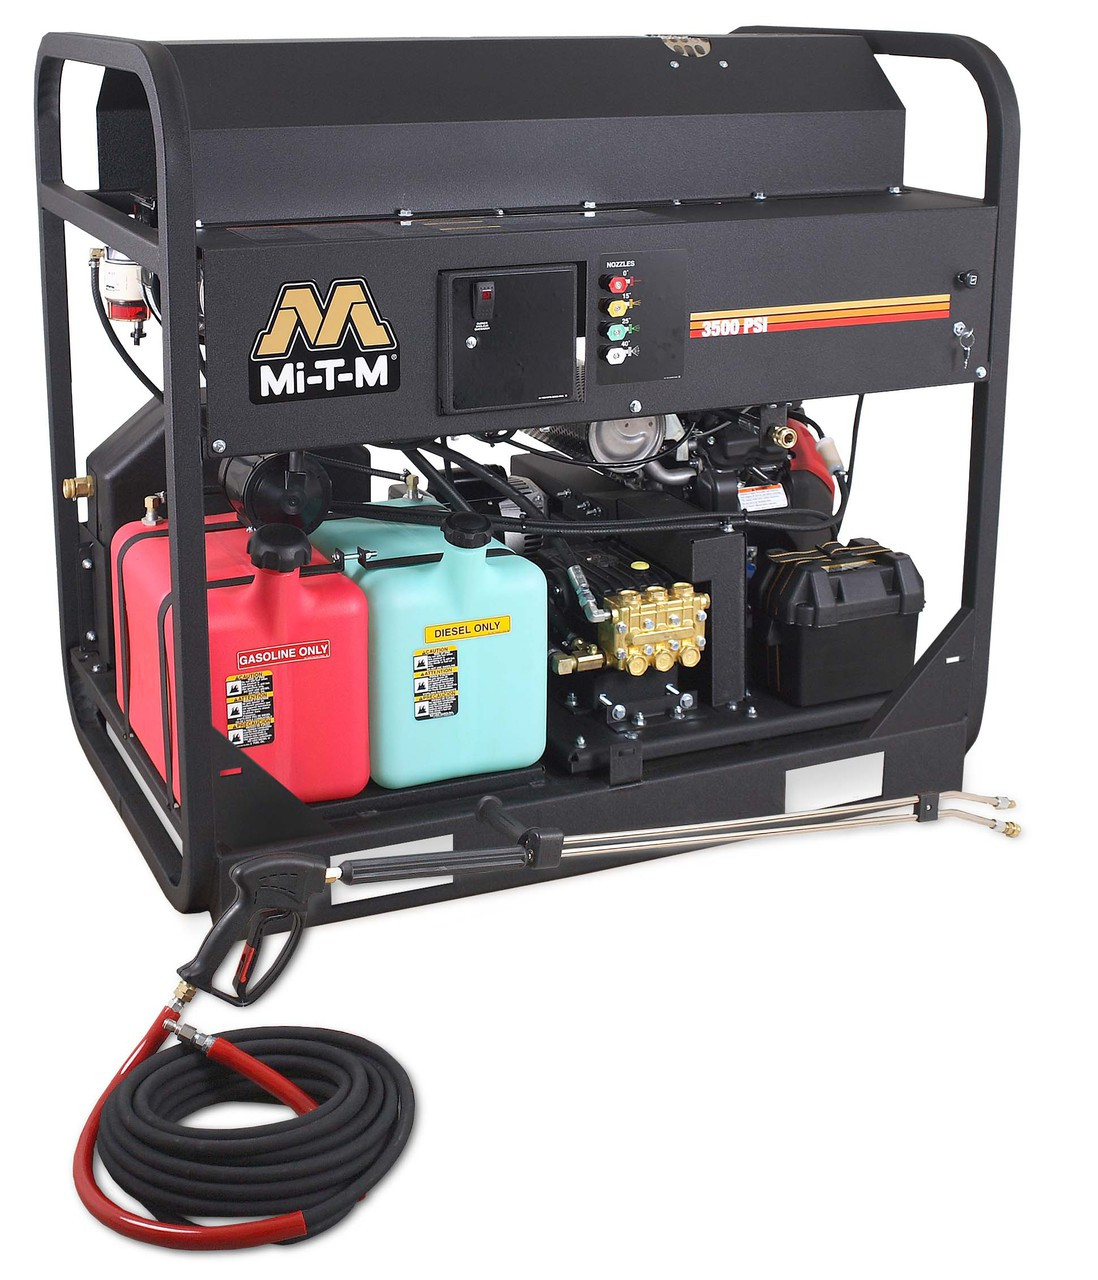 mi t m wiring diagram wiring library mi t m hs gas hot water pressure washer 3500 [ 1098 x 1280 Pixel ]